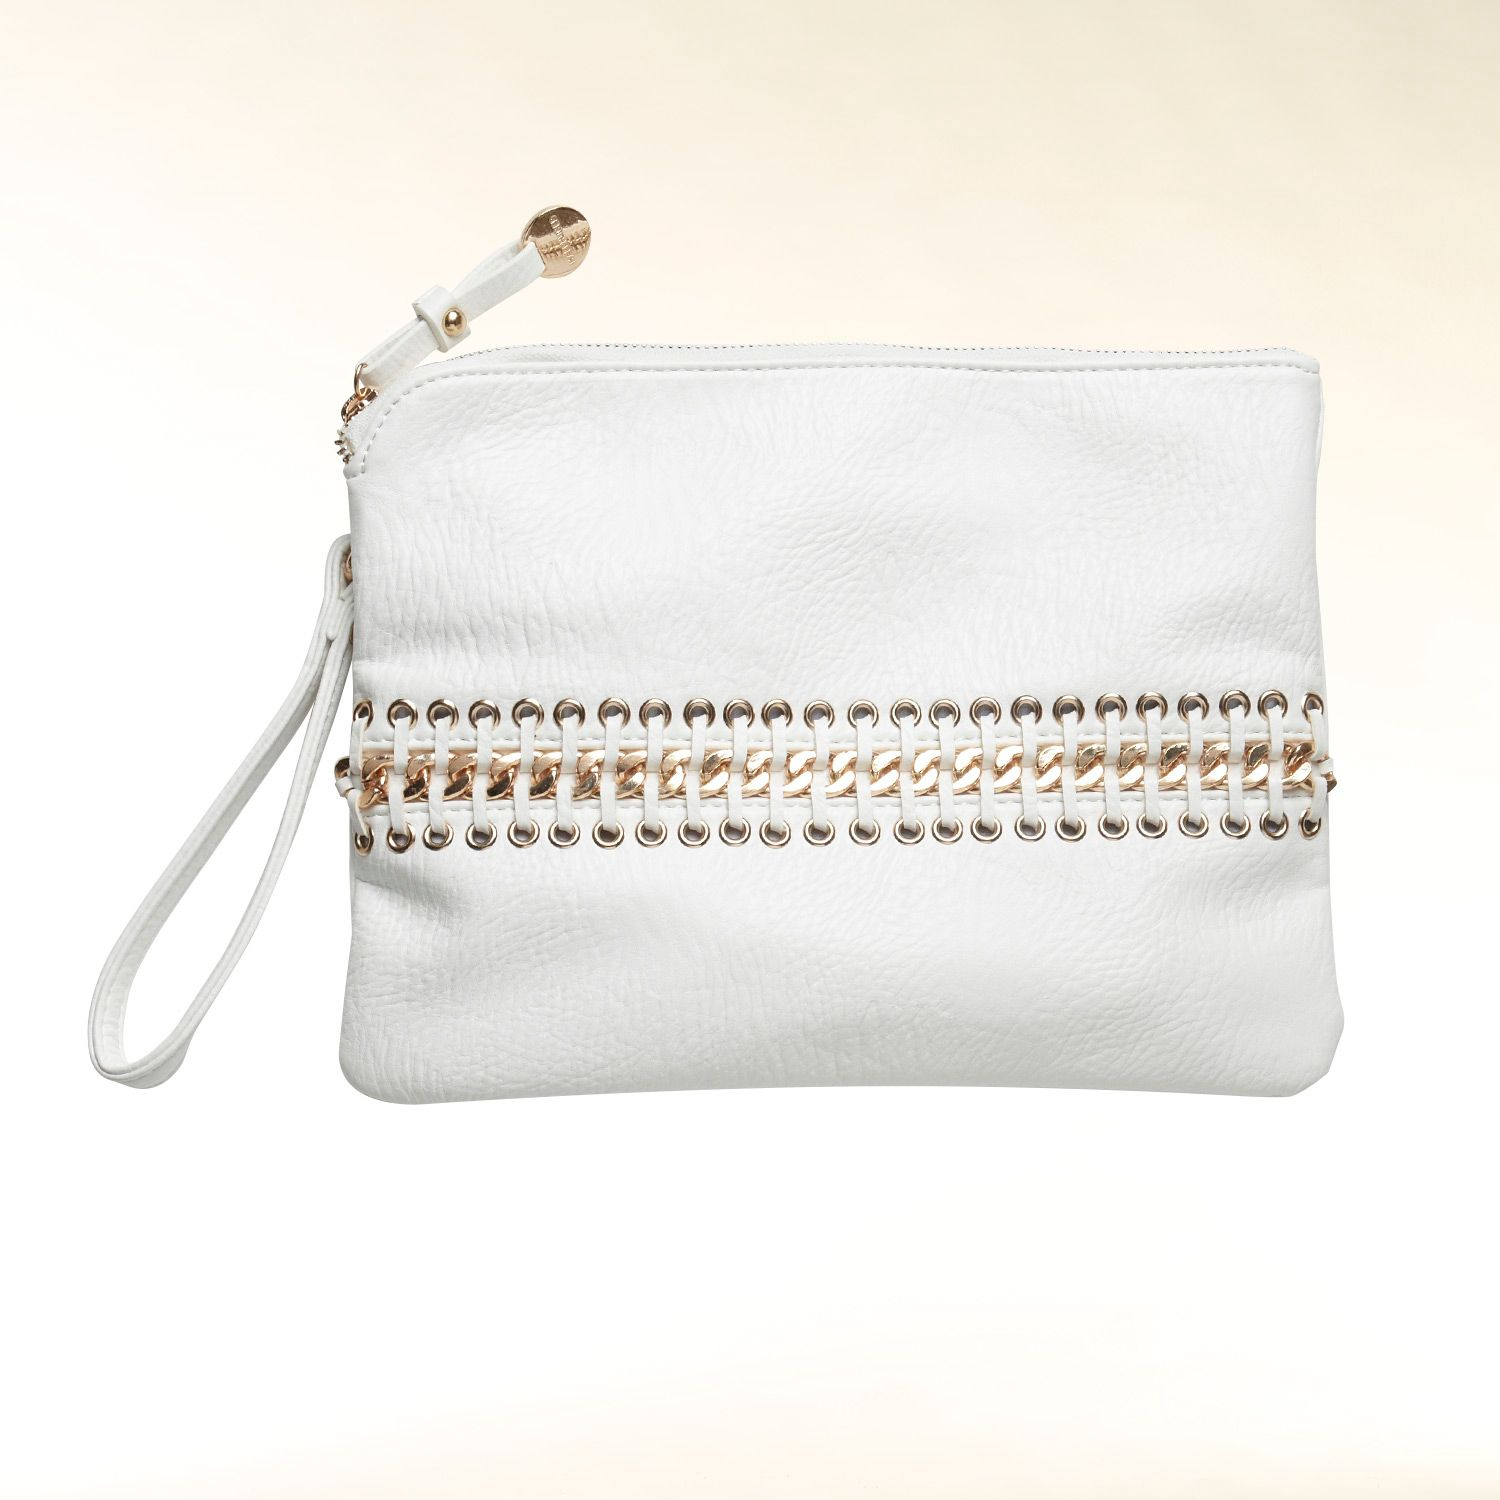 Chain embellished clutch